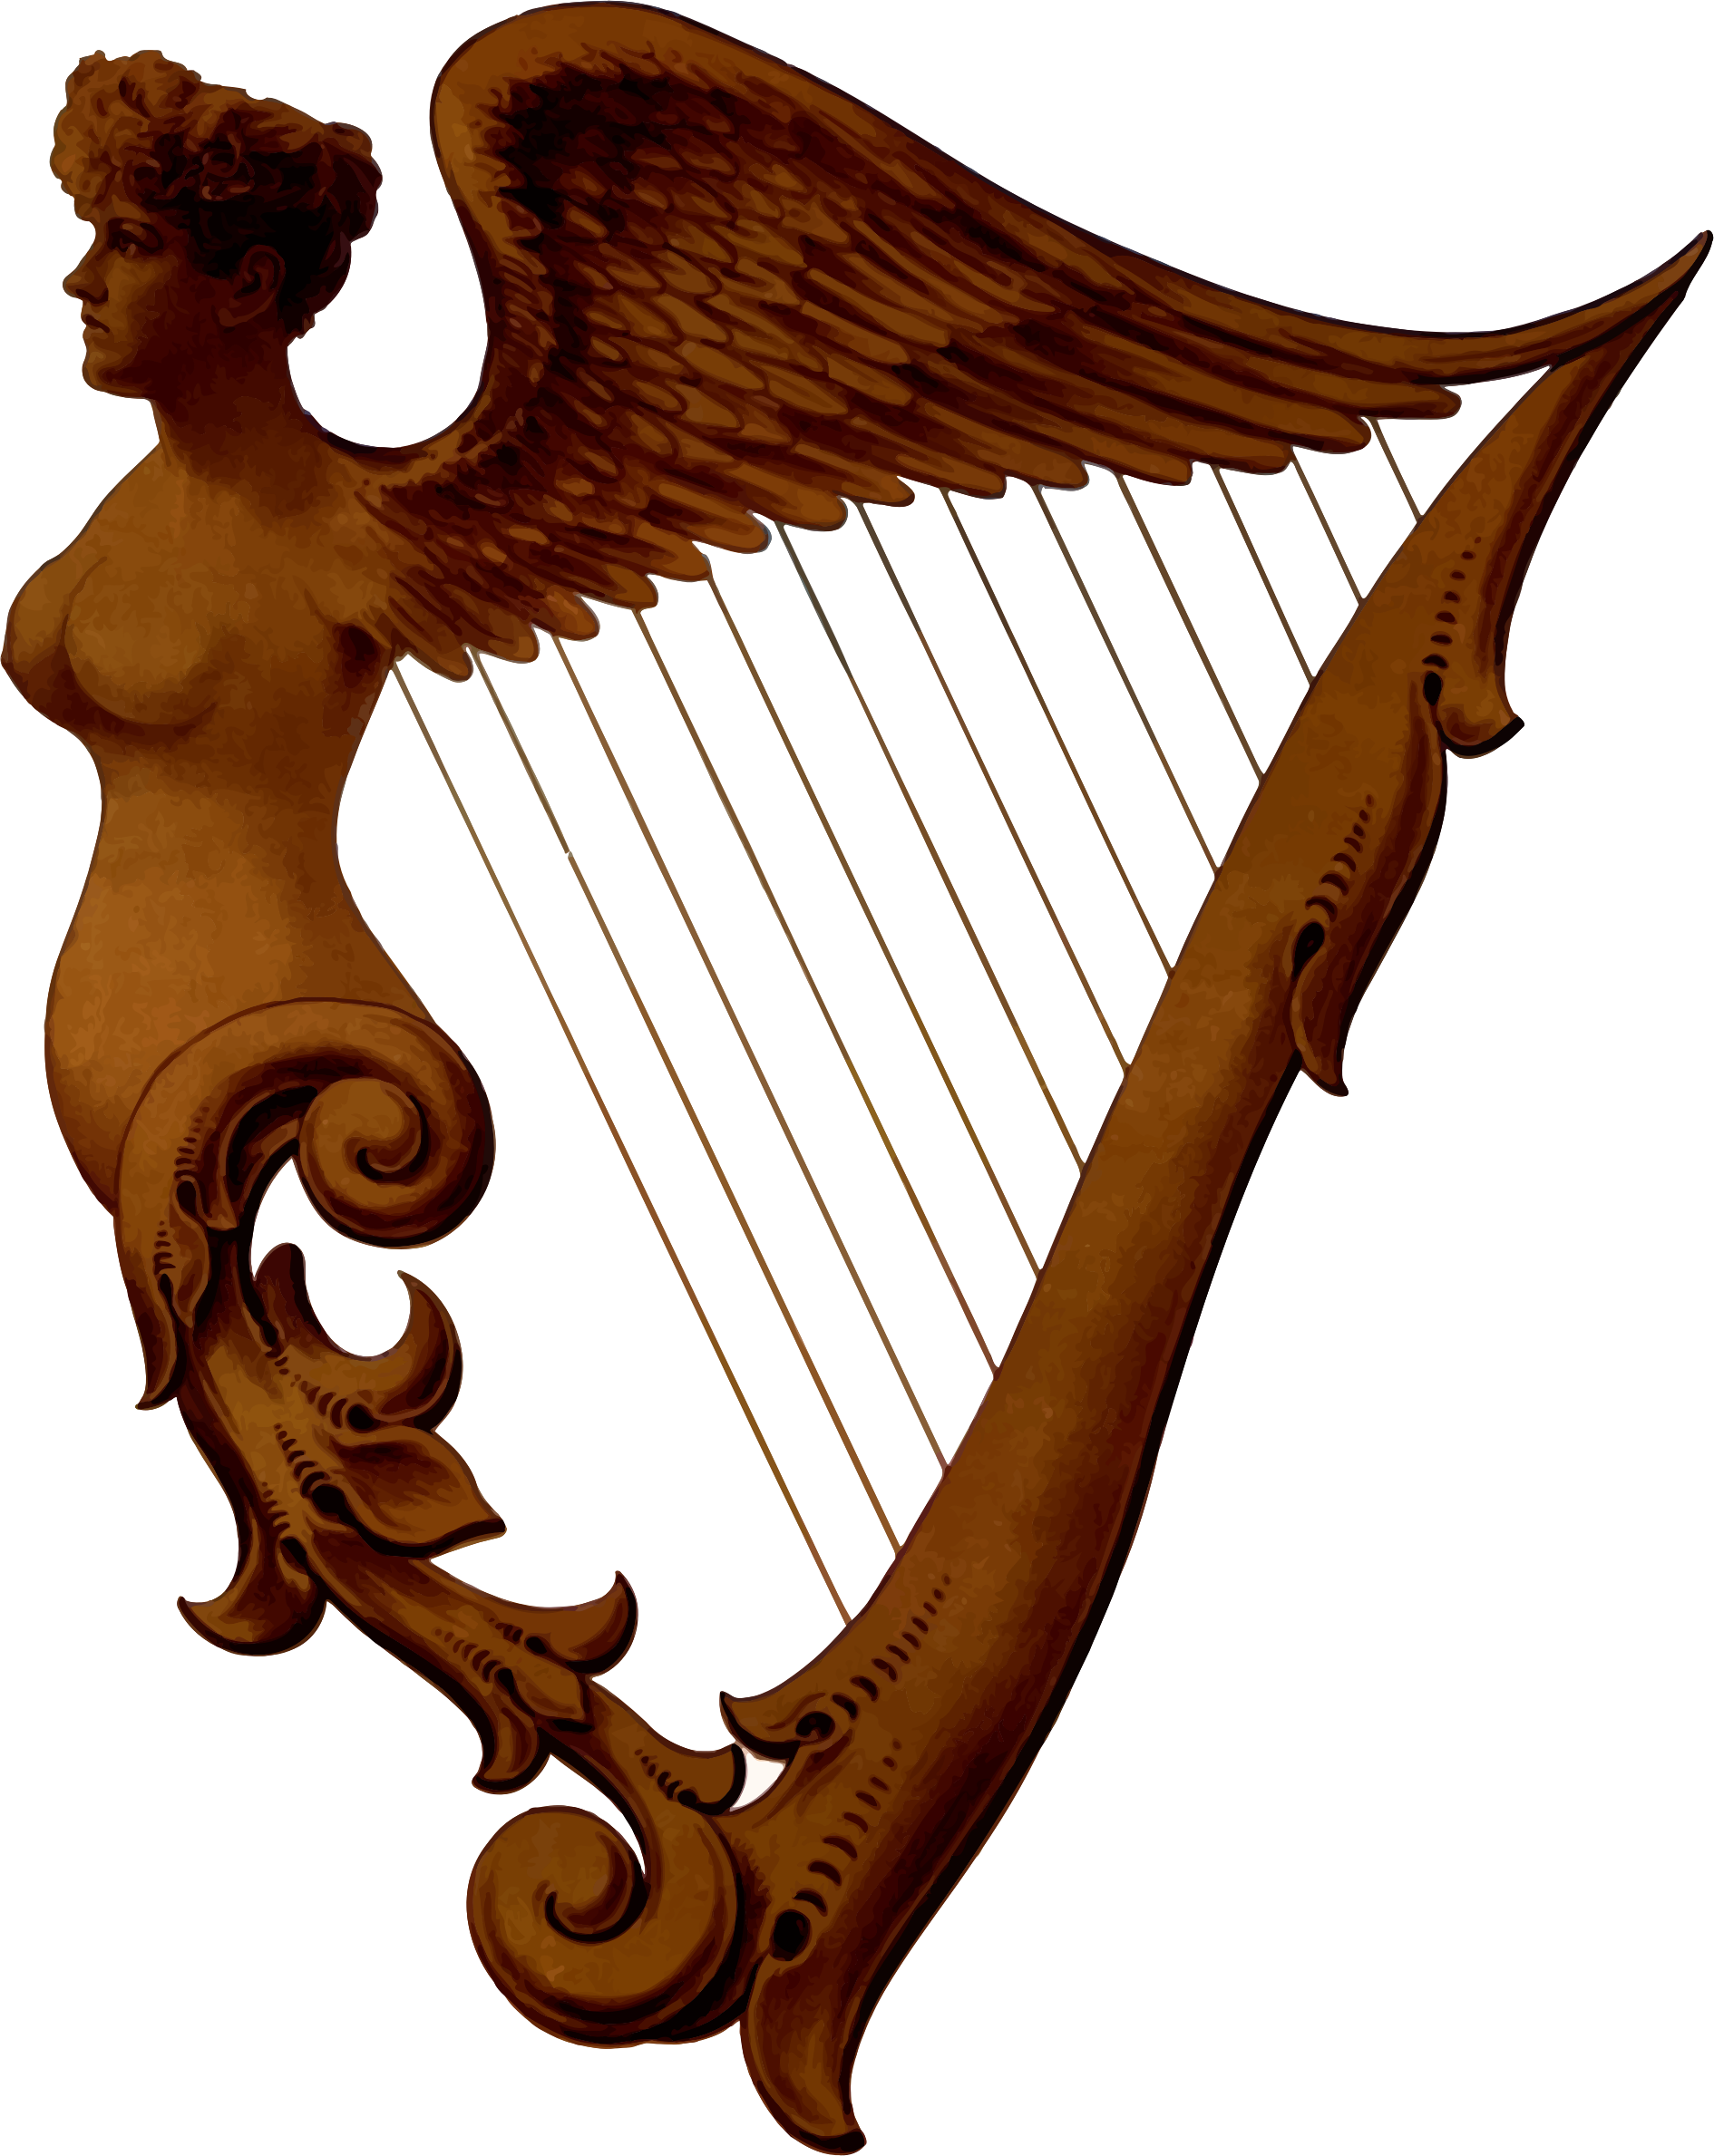 Irish harp by Firkin